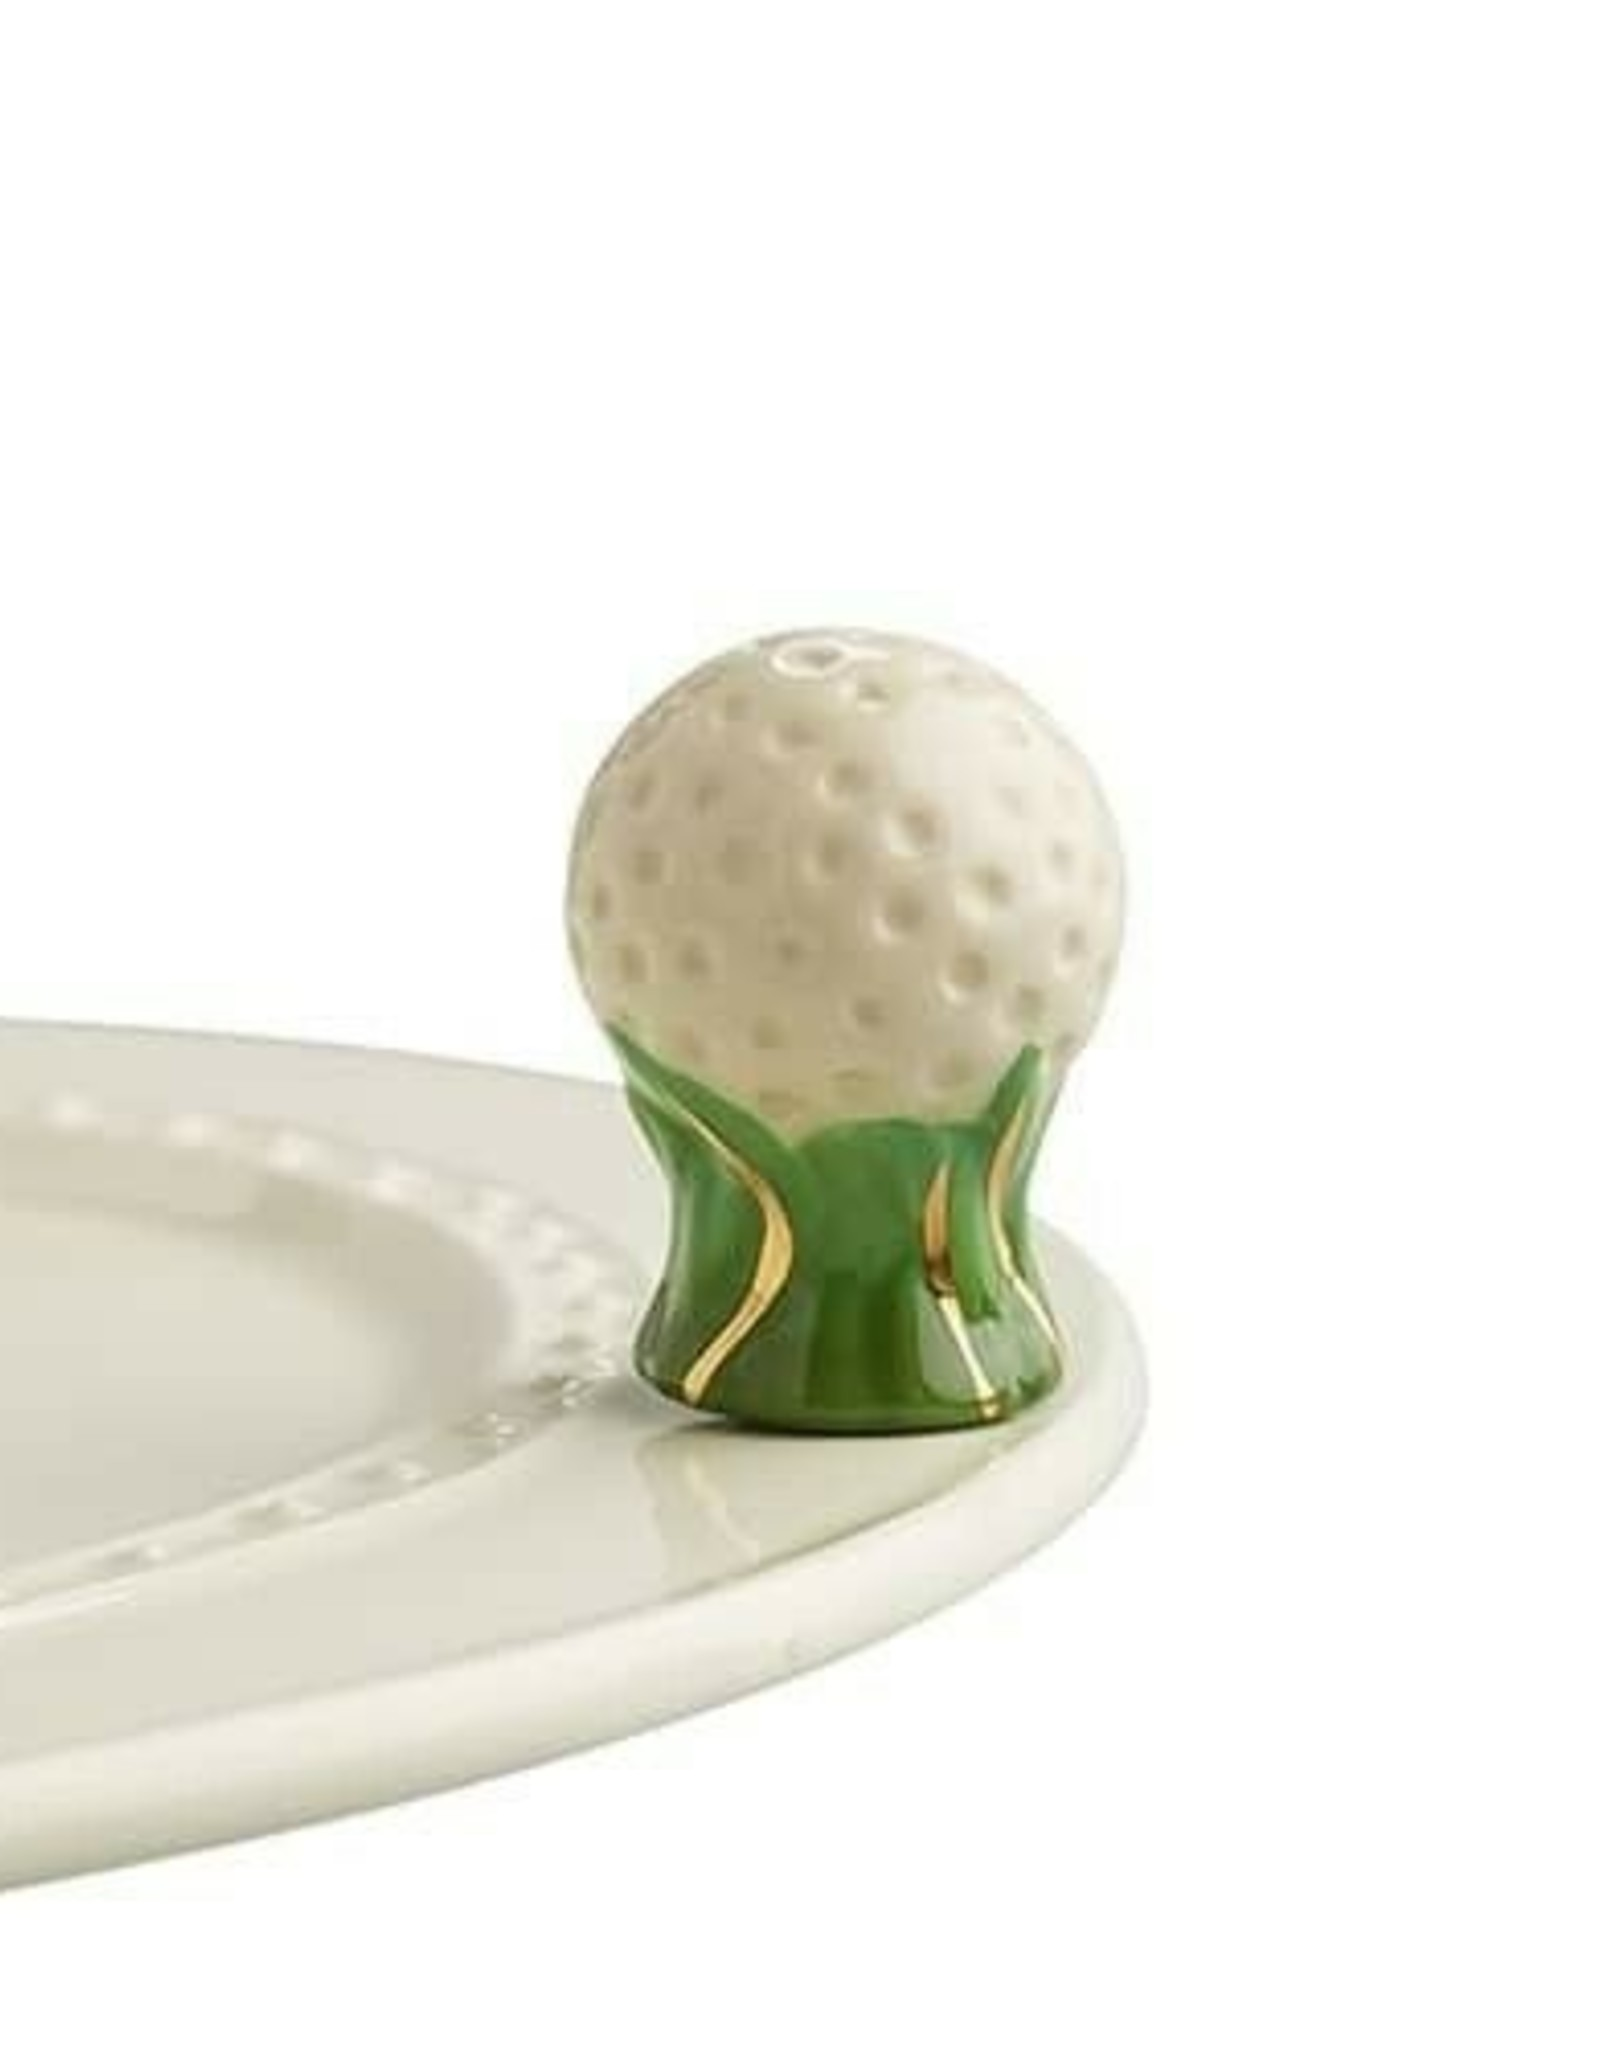 Nora Fleming Hole in One (golf ball), mini